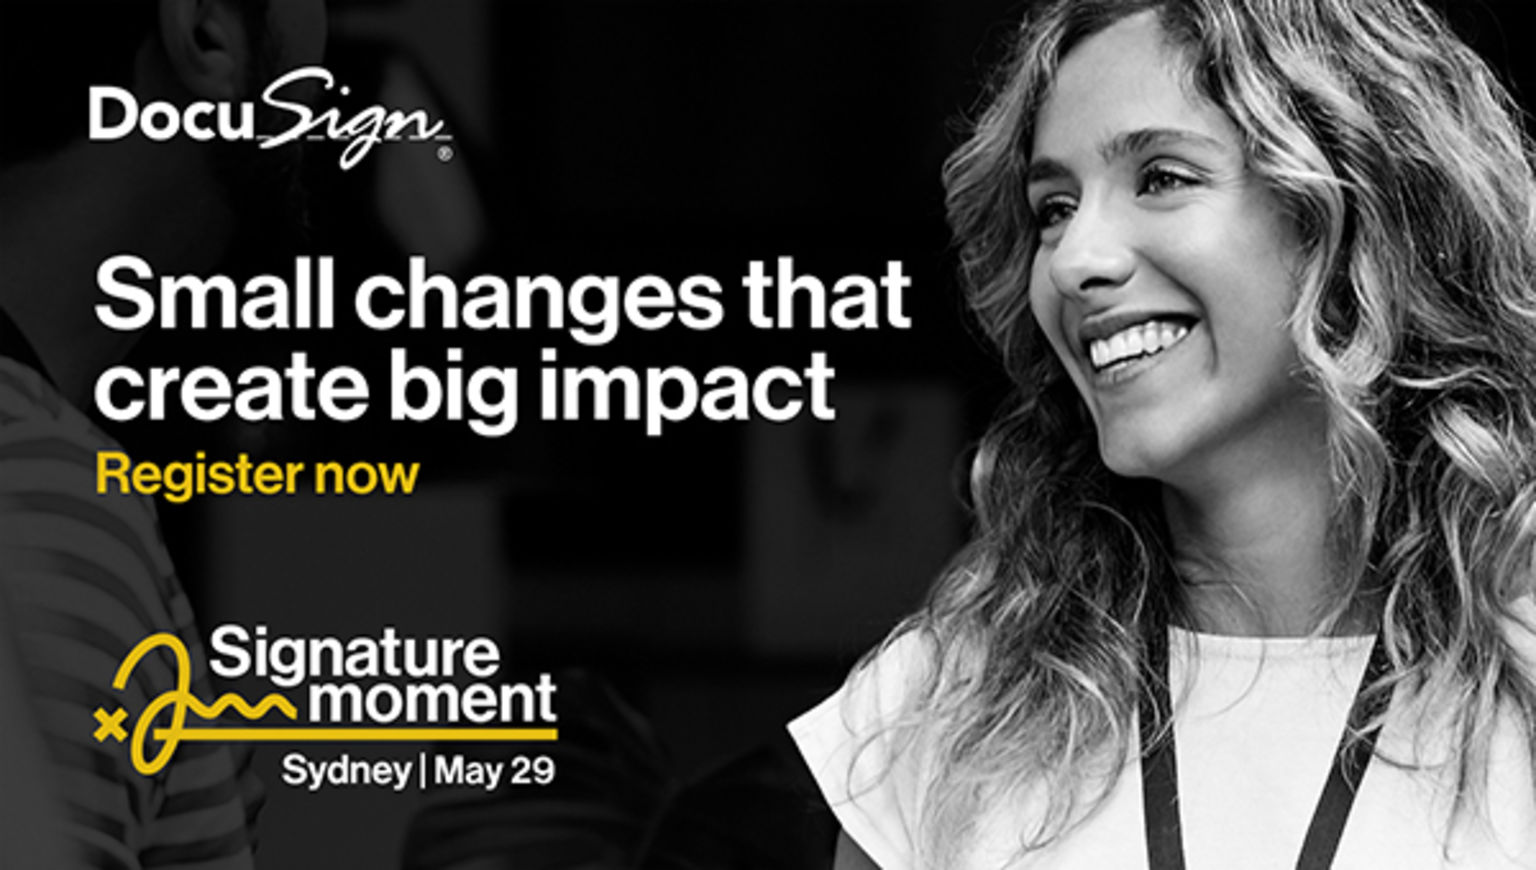 Small changes that create big impact. Register now.